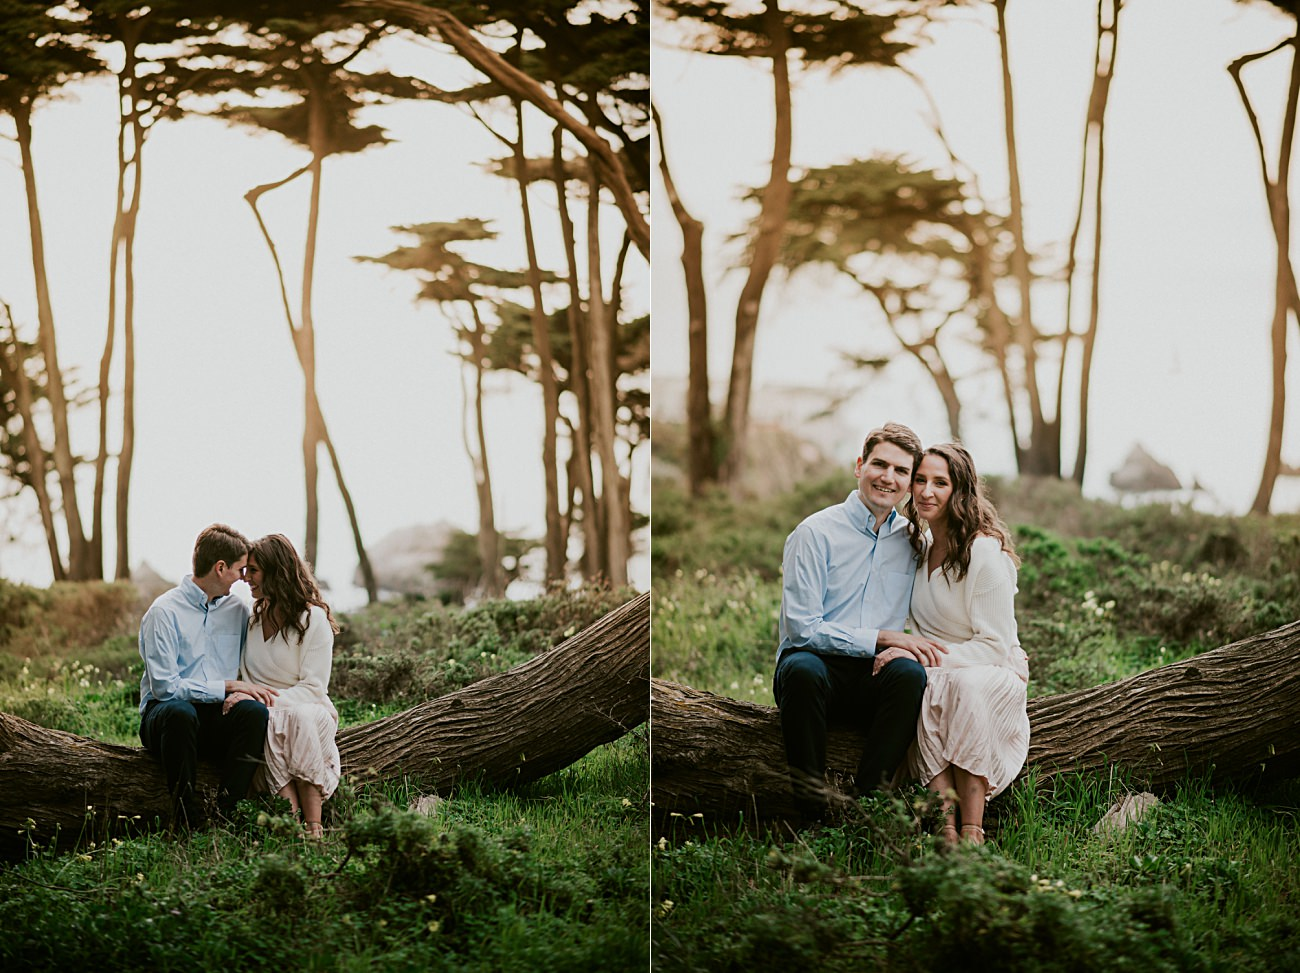 California Engagement Session, What to wear to engagement Session, Woodsy Engagement, California Engagement